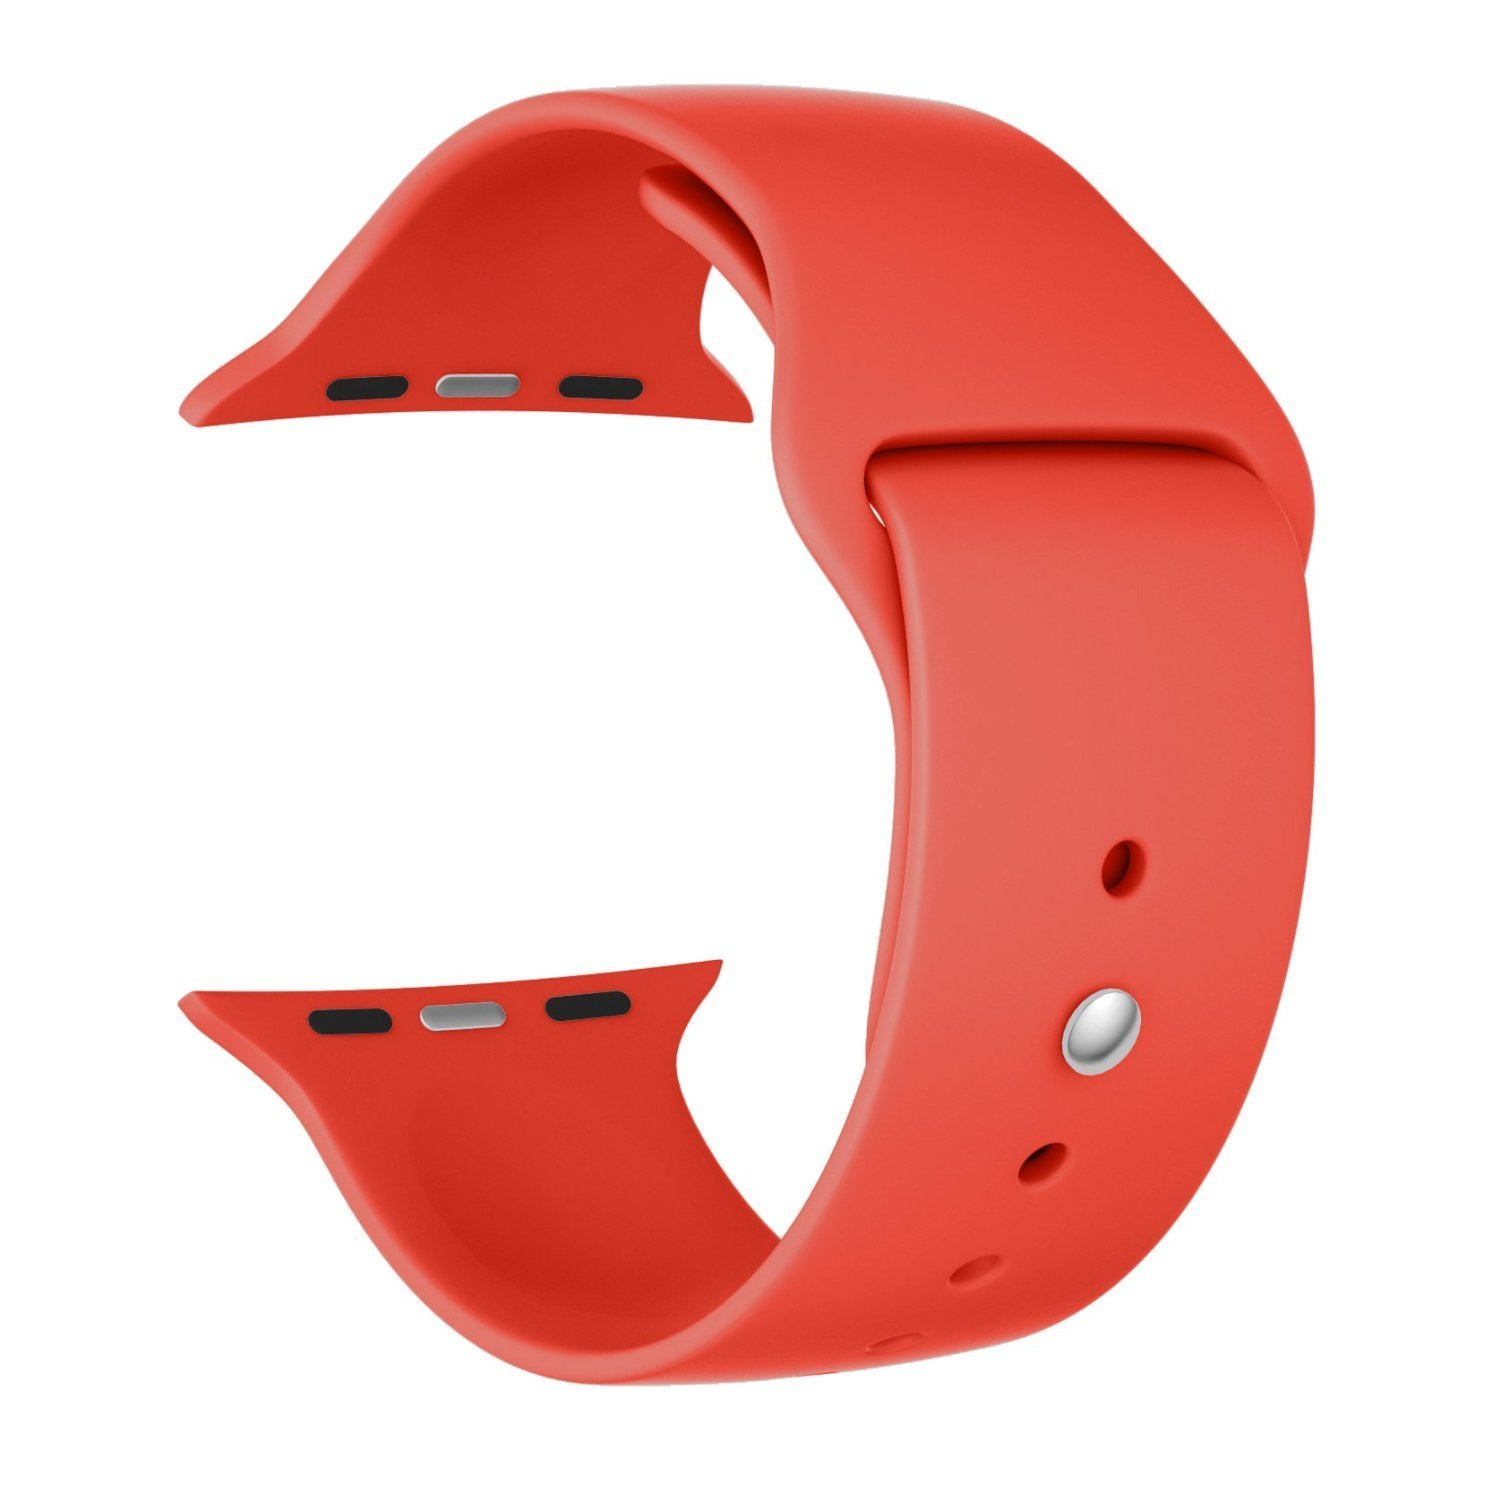 Apple Watch Band, BUREI Soft Silicone Sport Style Replacement Iwatch Strap for Apple Wrist Watch 38mm/42mm (38mm,style2, orange)